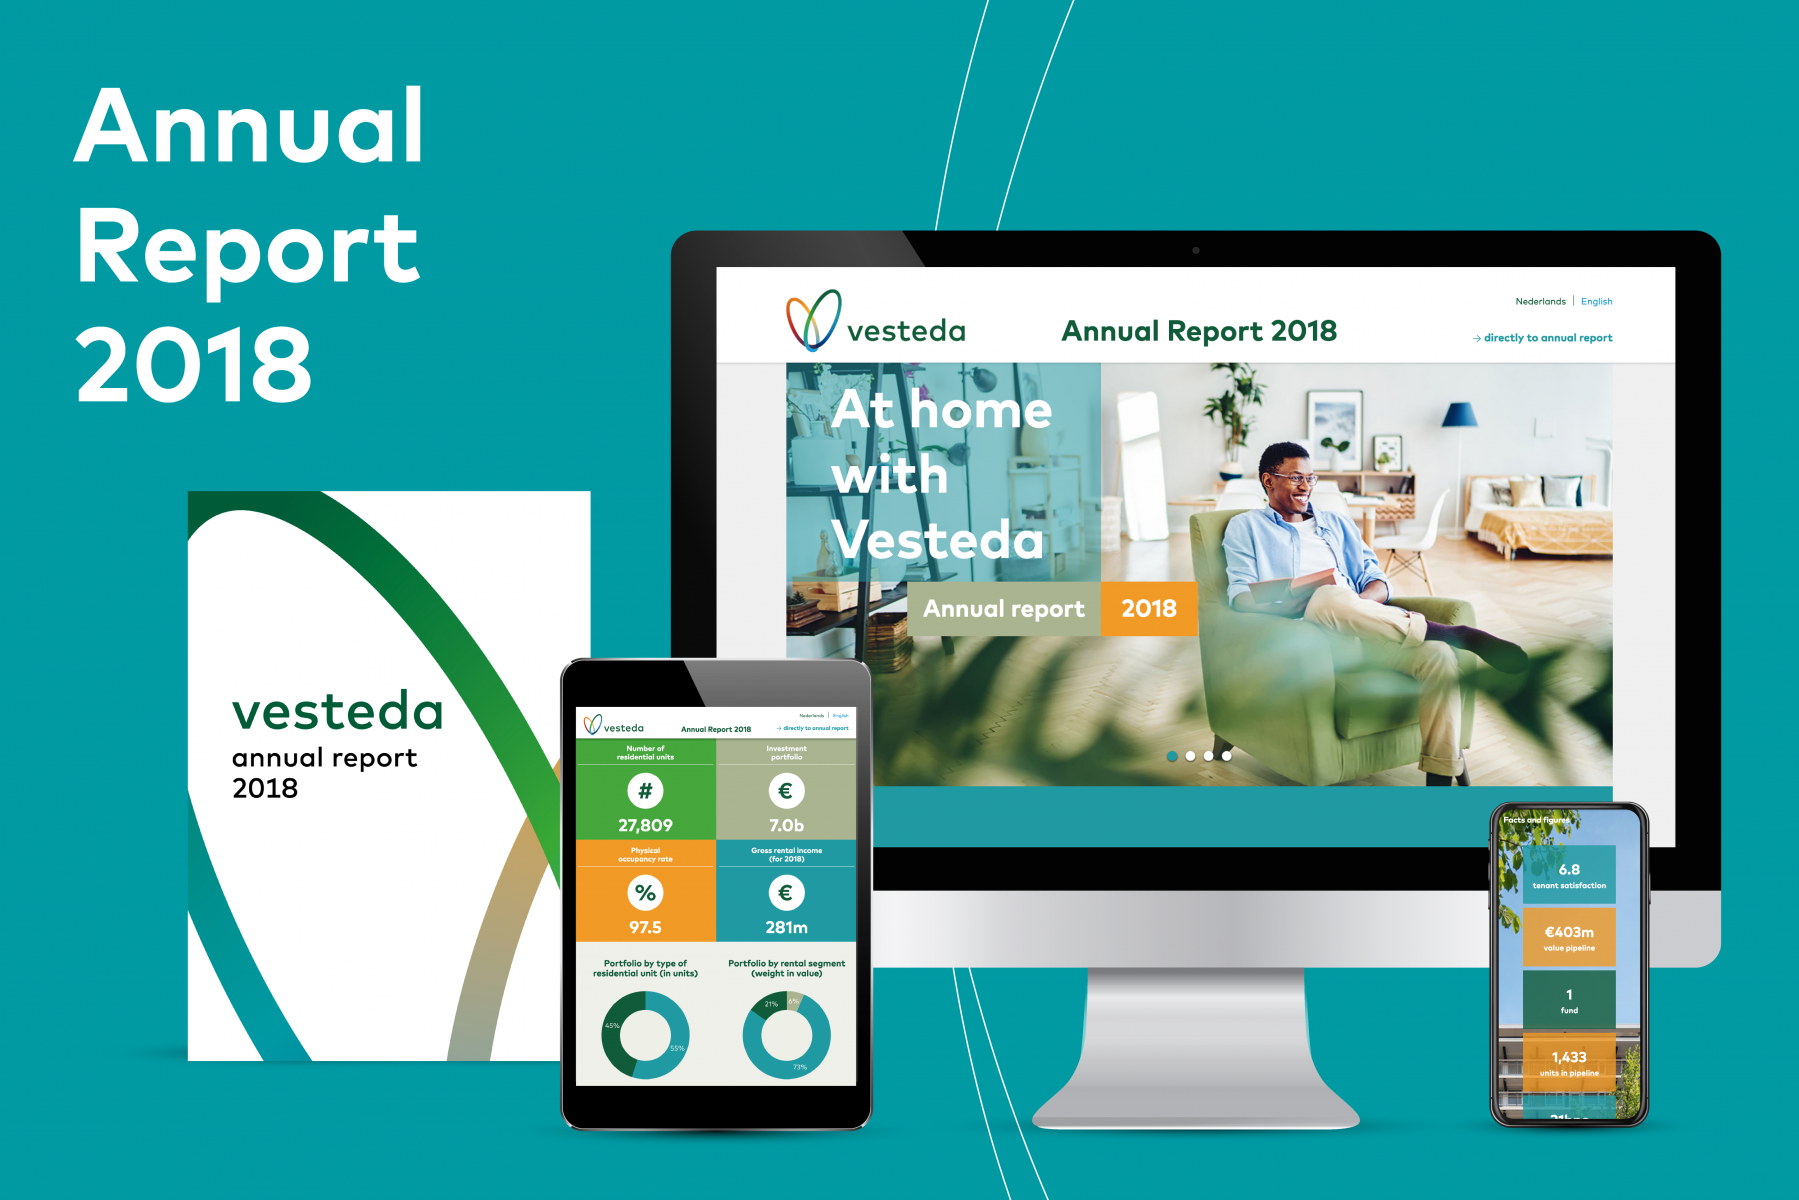 Vesteda Annual Report 2018